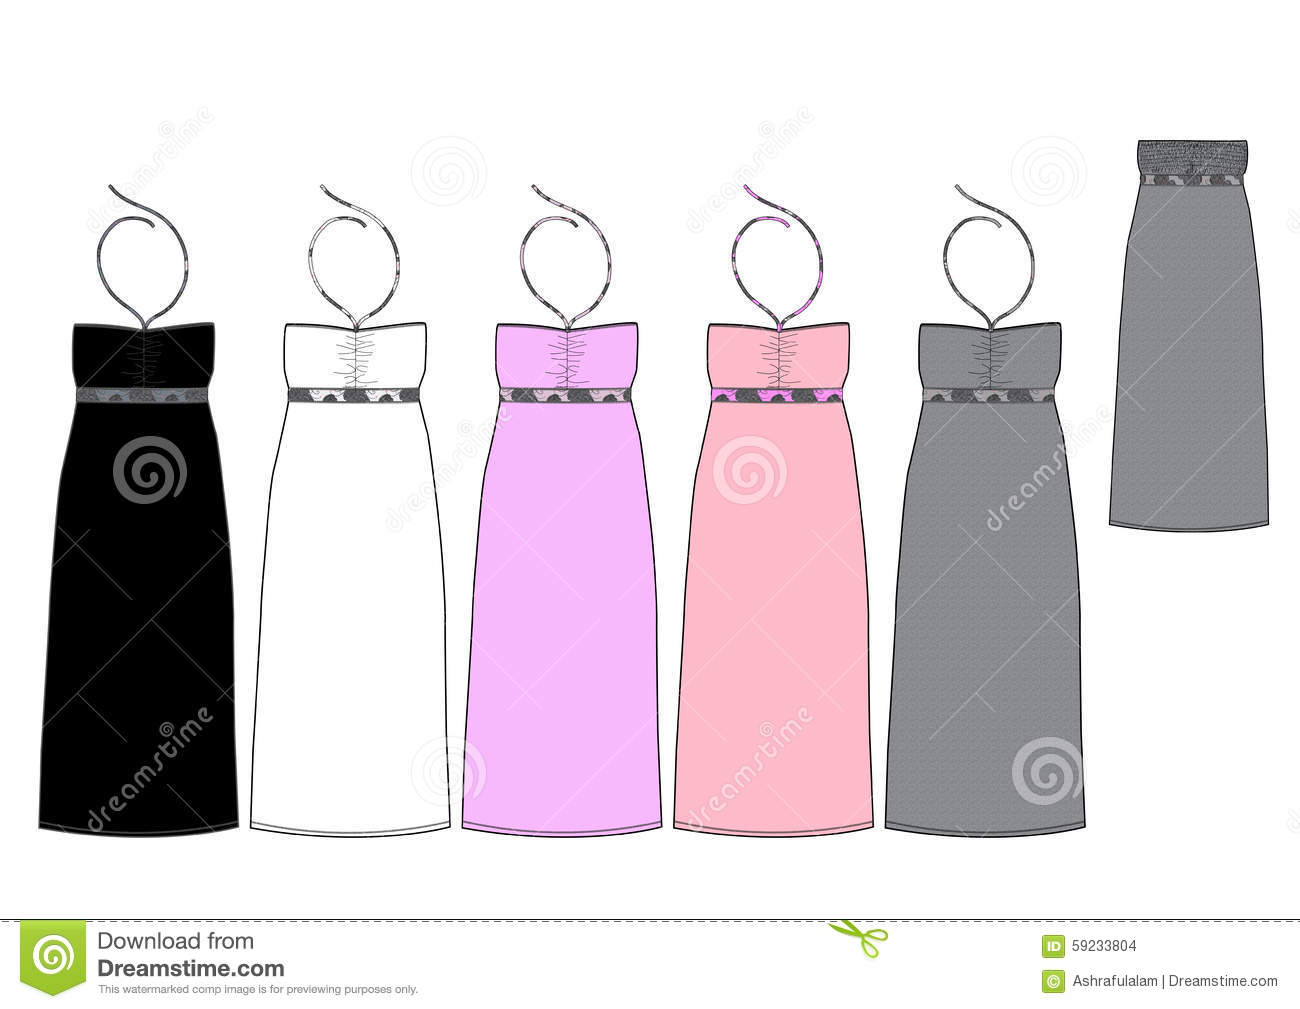 Template for a maxi dress